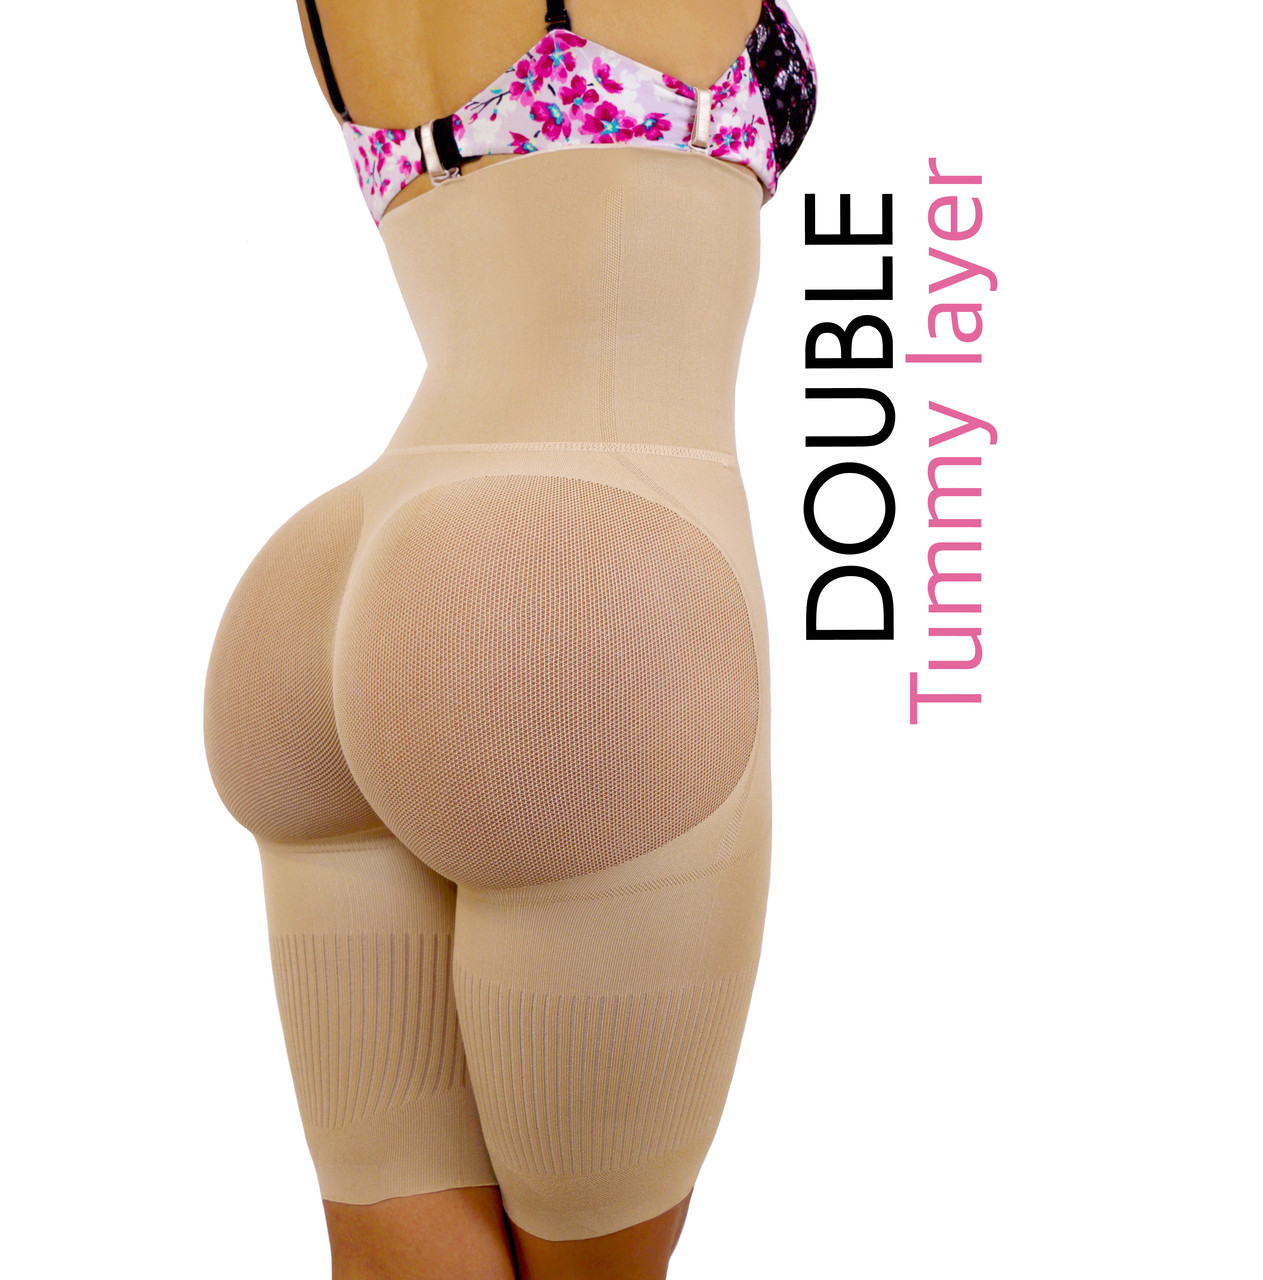 76da61cecab Happy Butt N°7 Double Tummy Layer - YAHAIRA INC